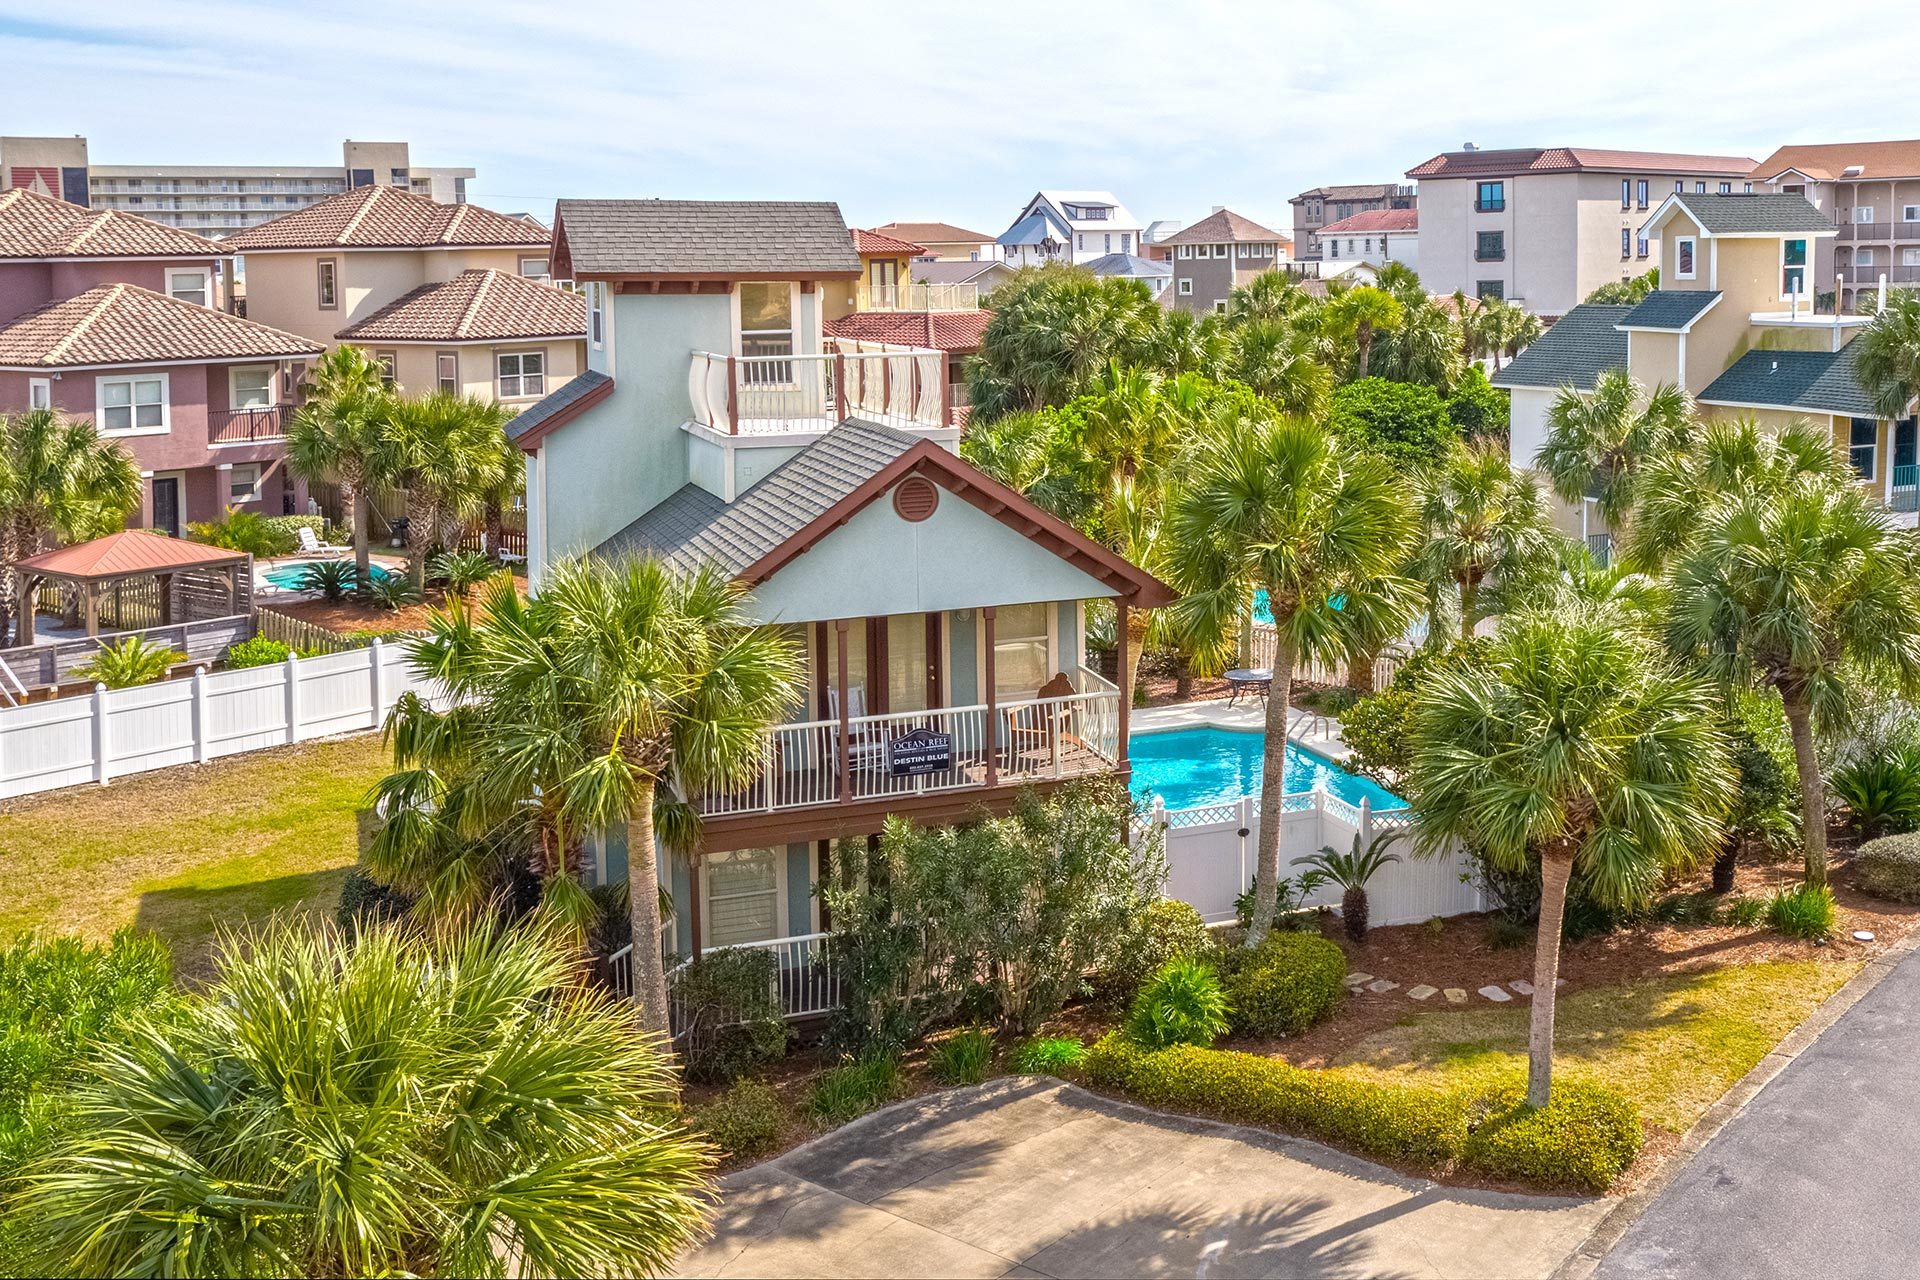 Destin Blue Vacation Home with Pool